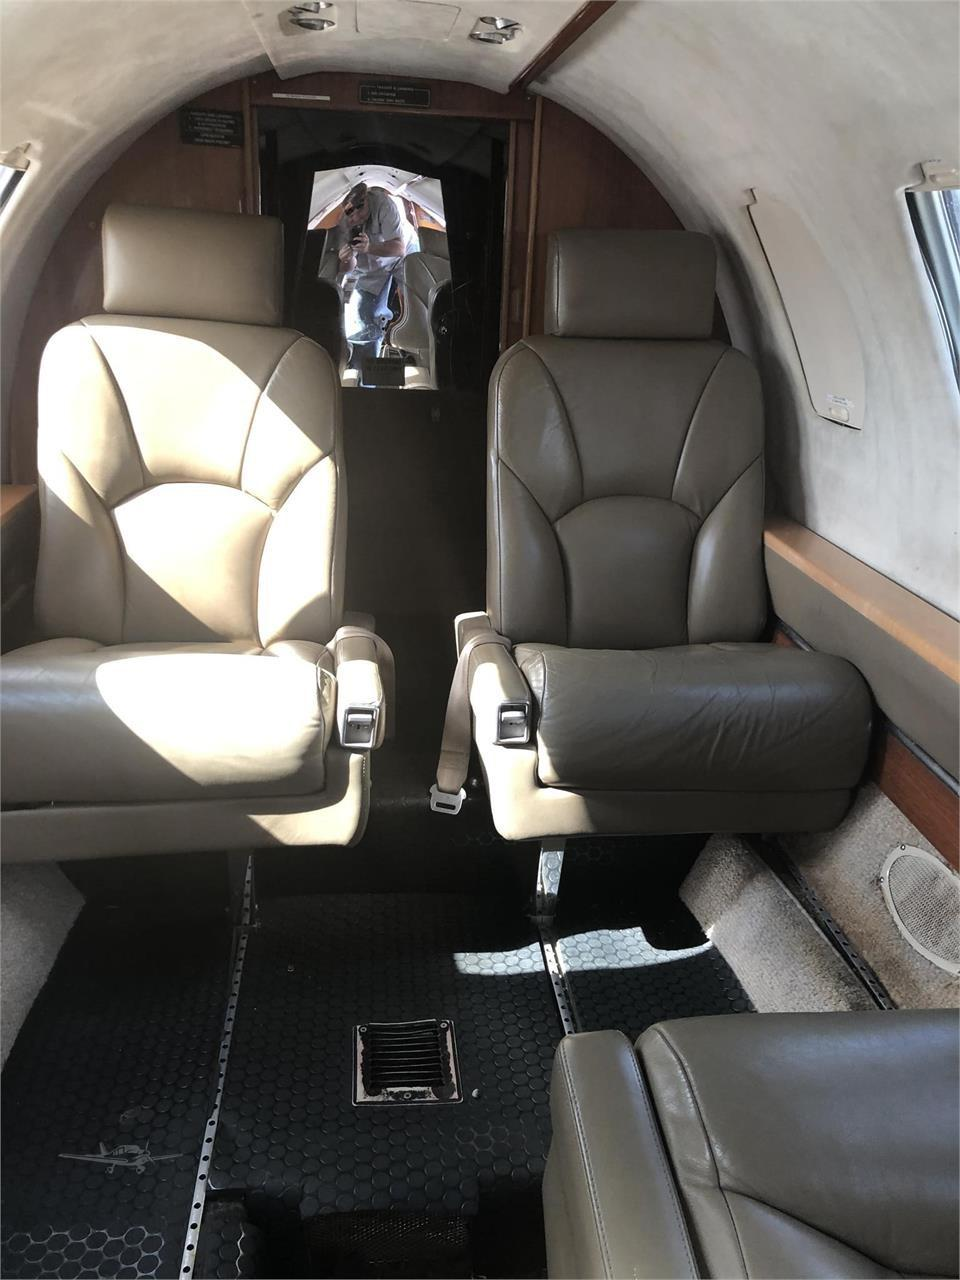 1981 CESSNA CITATION II Photo 3